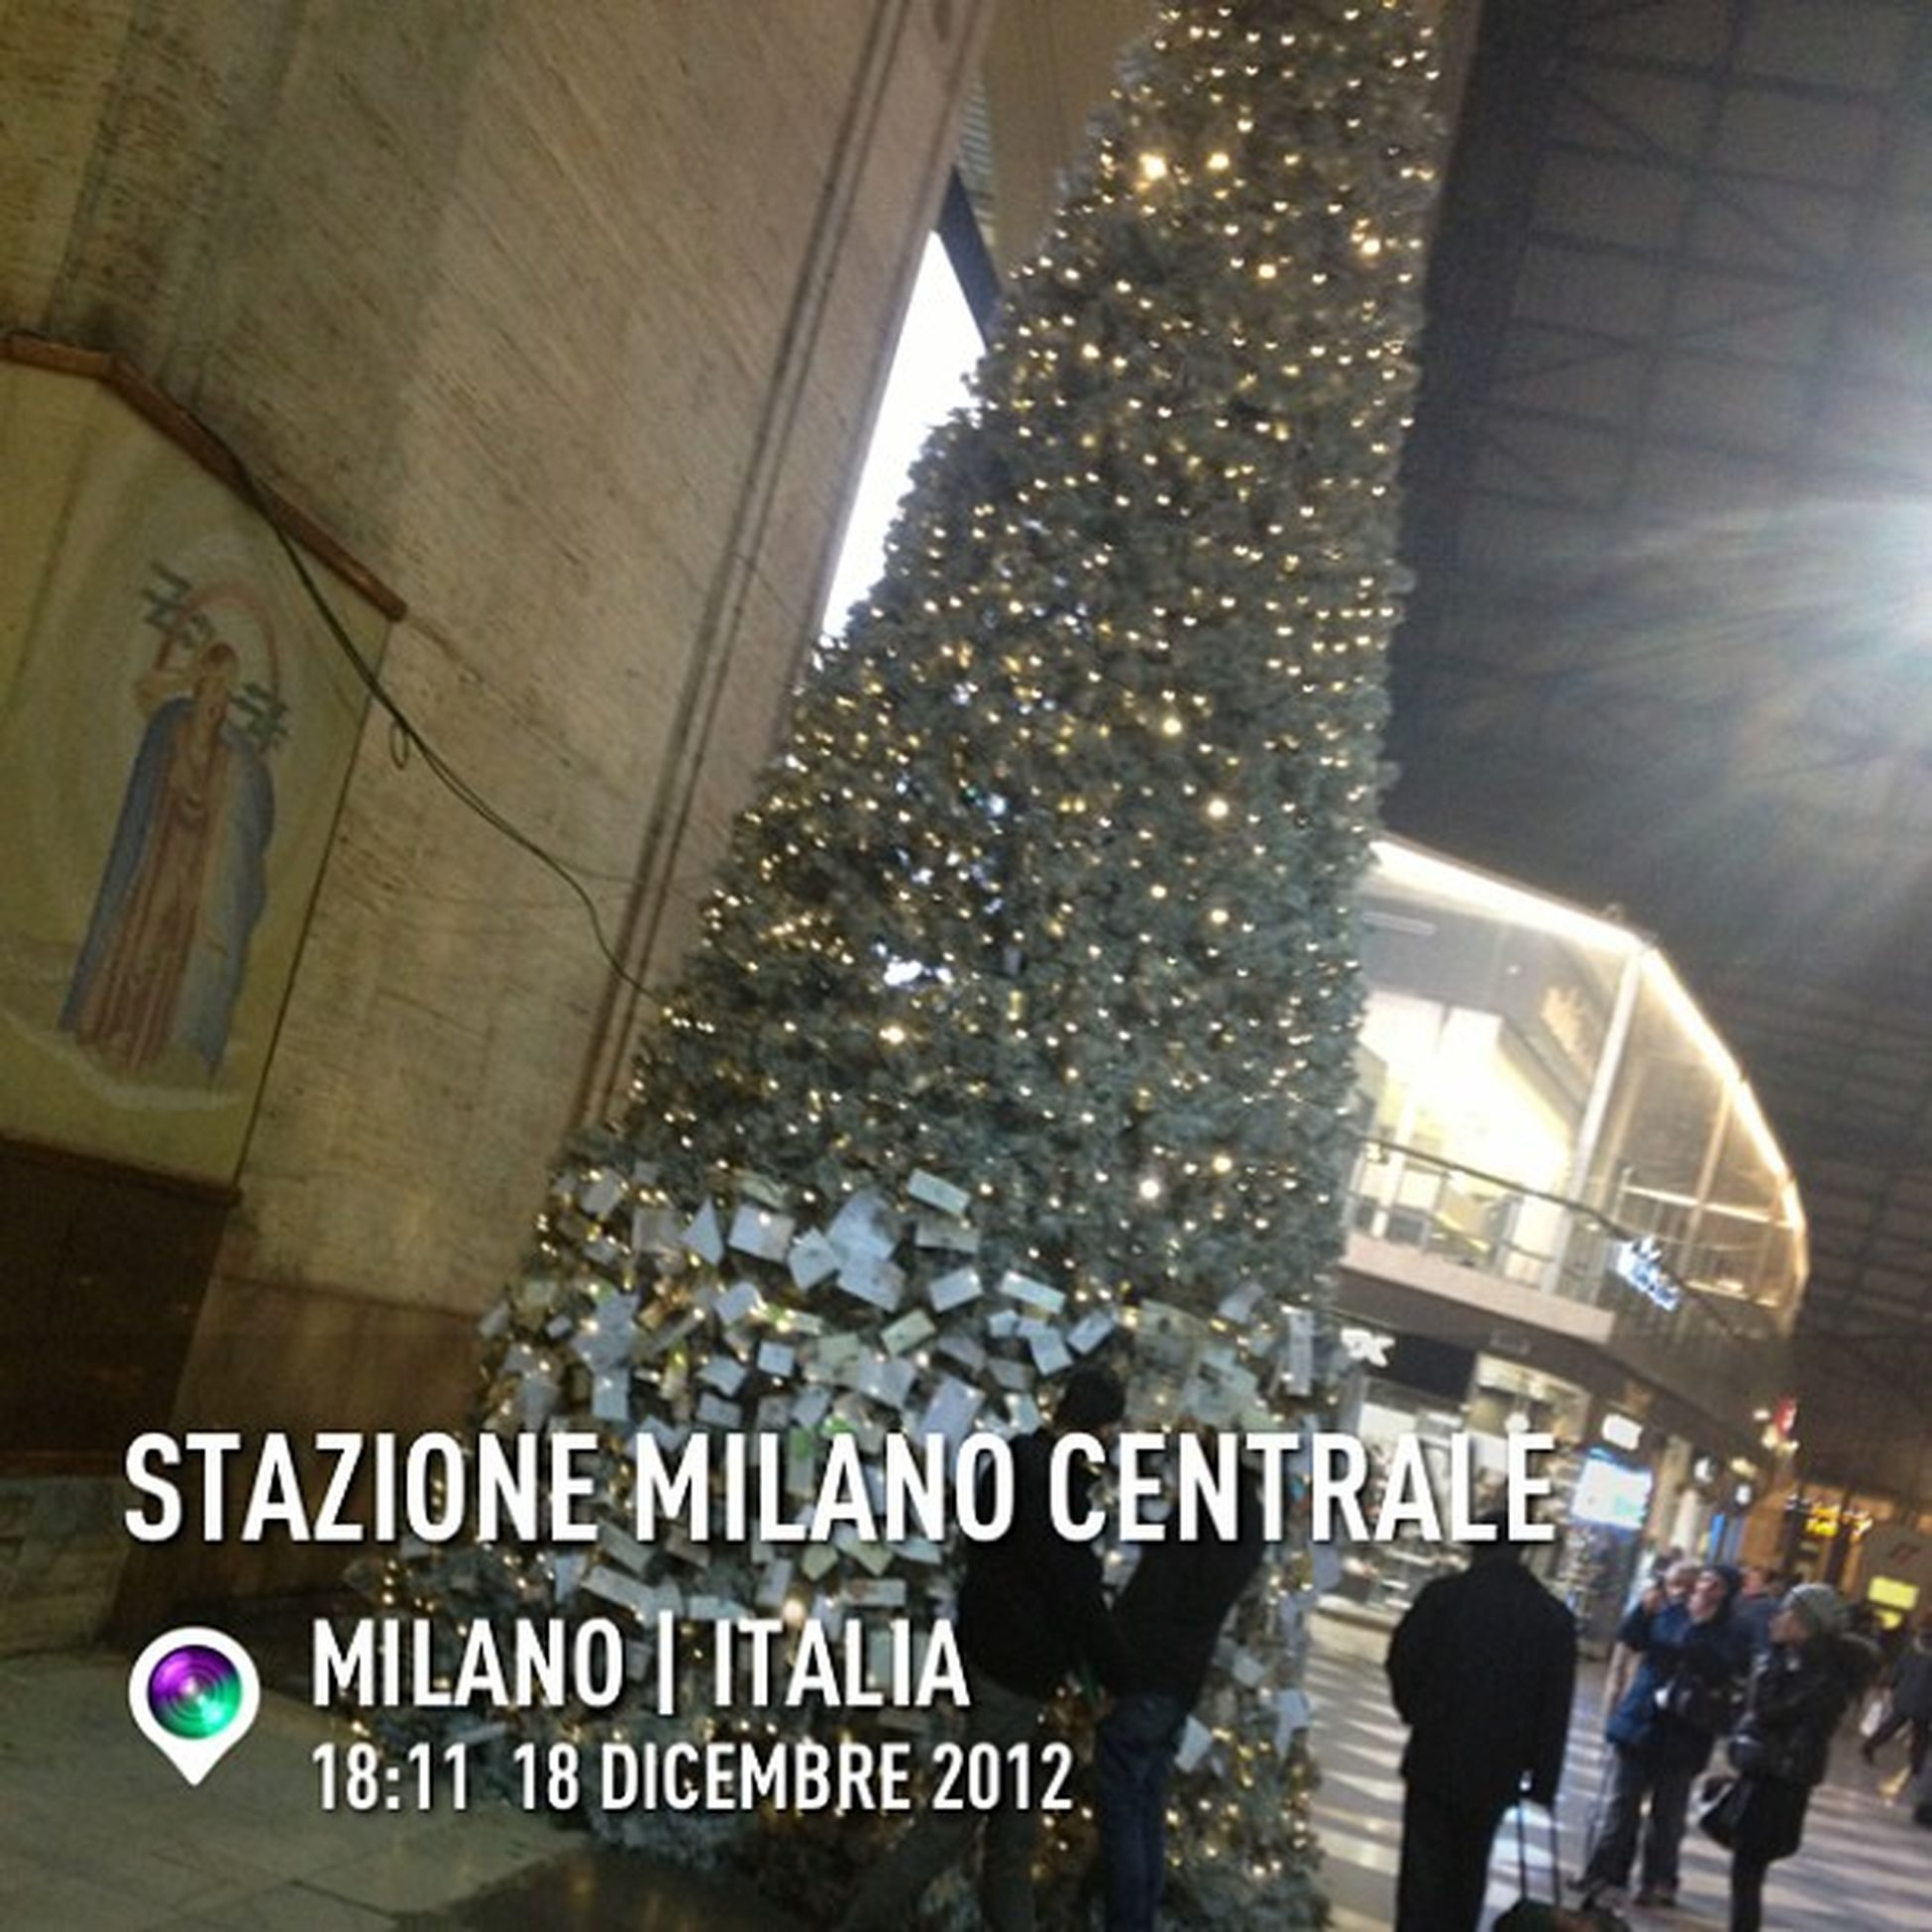 InstaPlace Instaplaceapp Instagood Photooftheday Instamood Picoftheday Instadaily Photo Instacool Instapic Picture Pic @instaplaceapp Place Earth World Italia Italy Milano Milan Stazionemilanocentrale Street Day